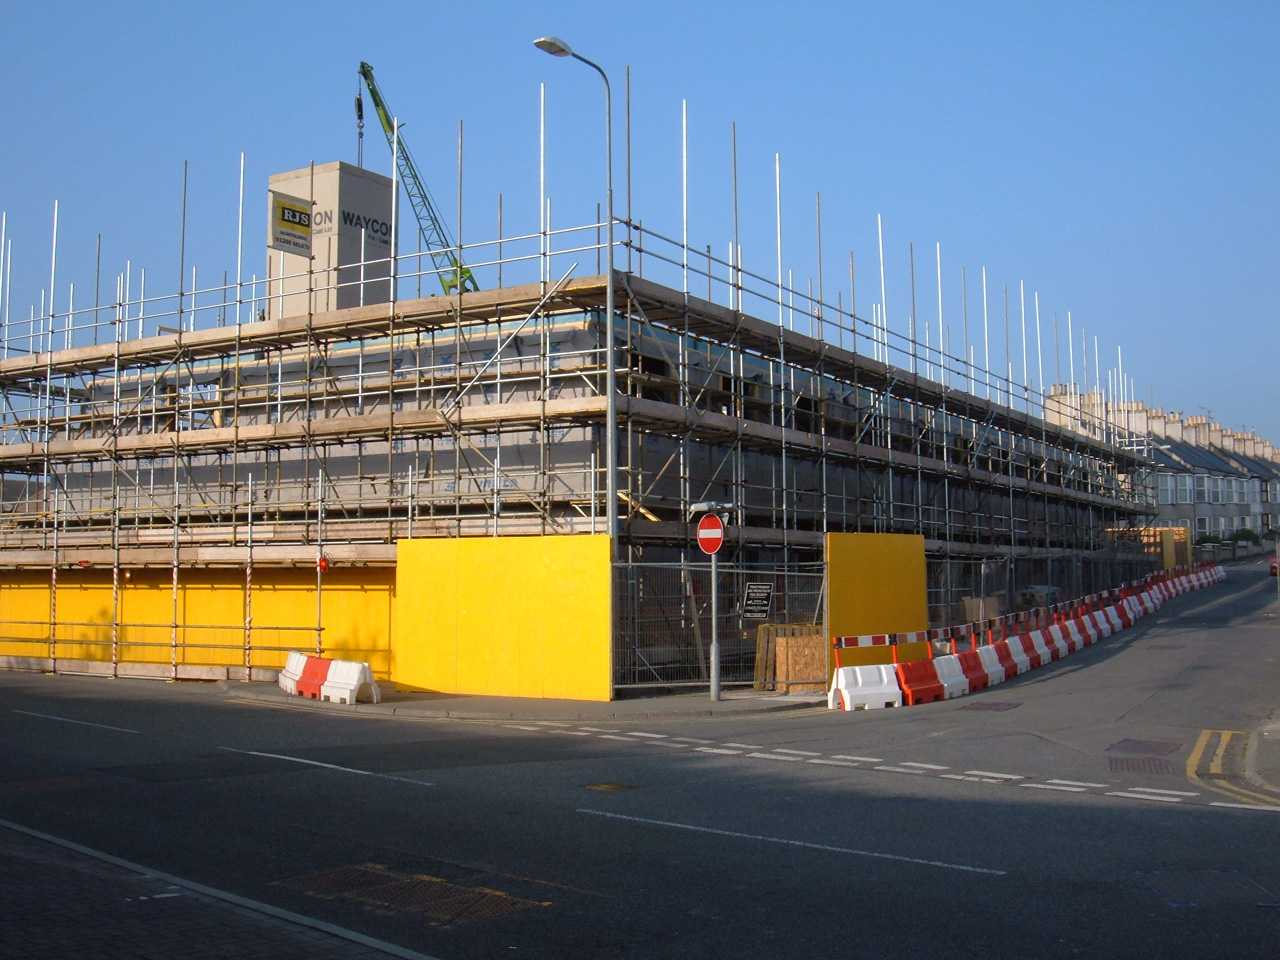 The new hotel on the land that the Nightclub / snooker club stood - May 2007